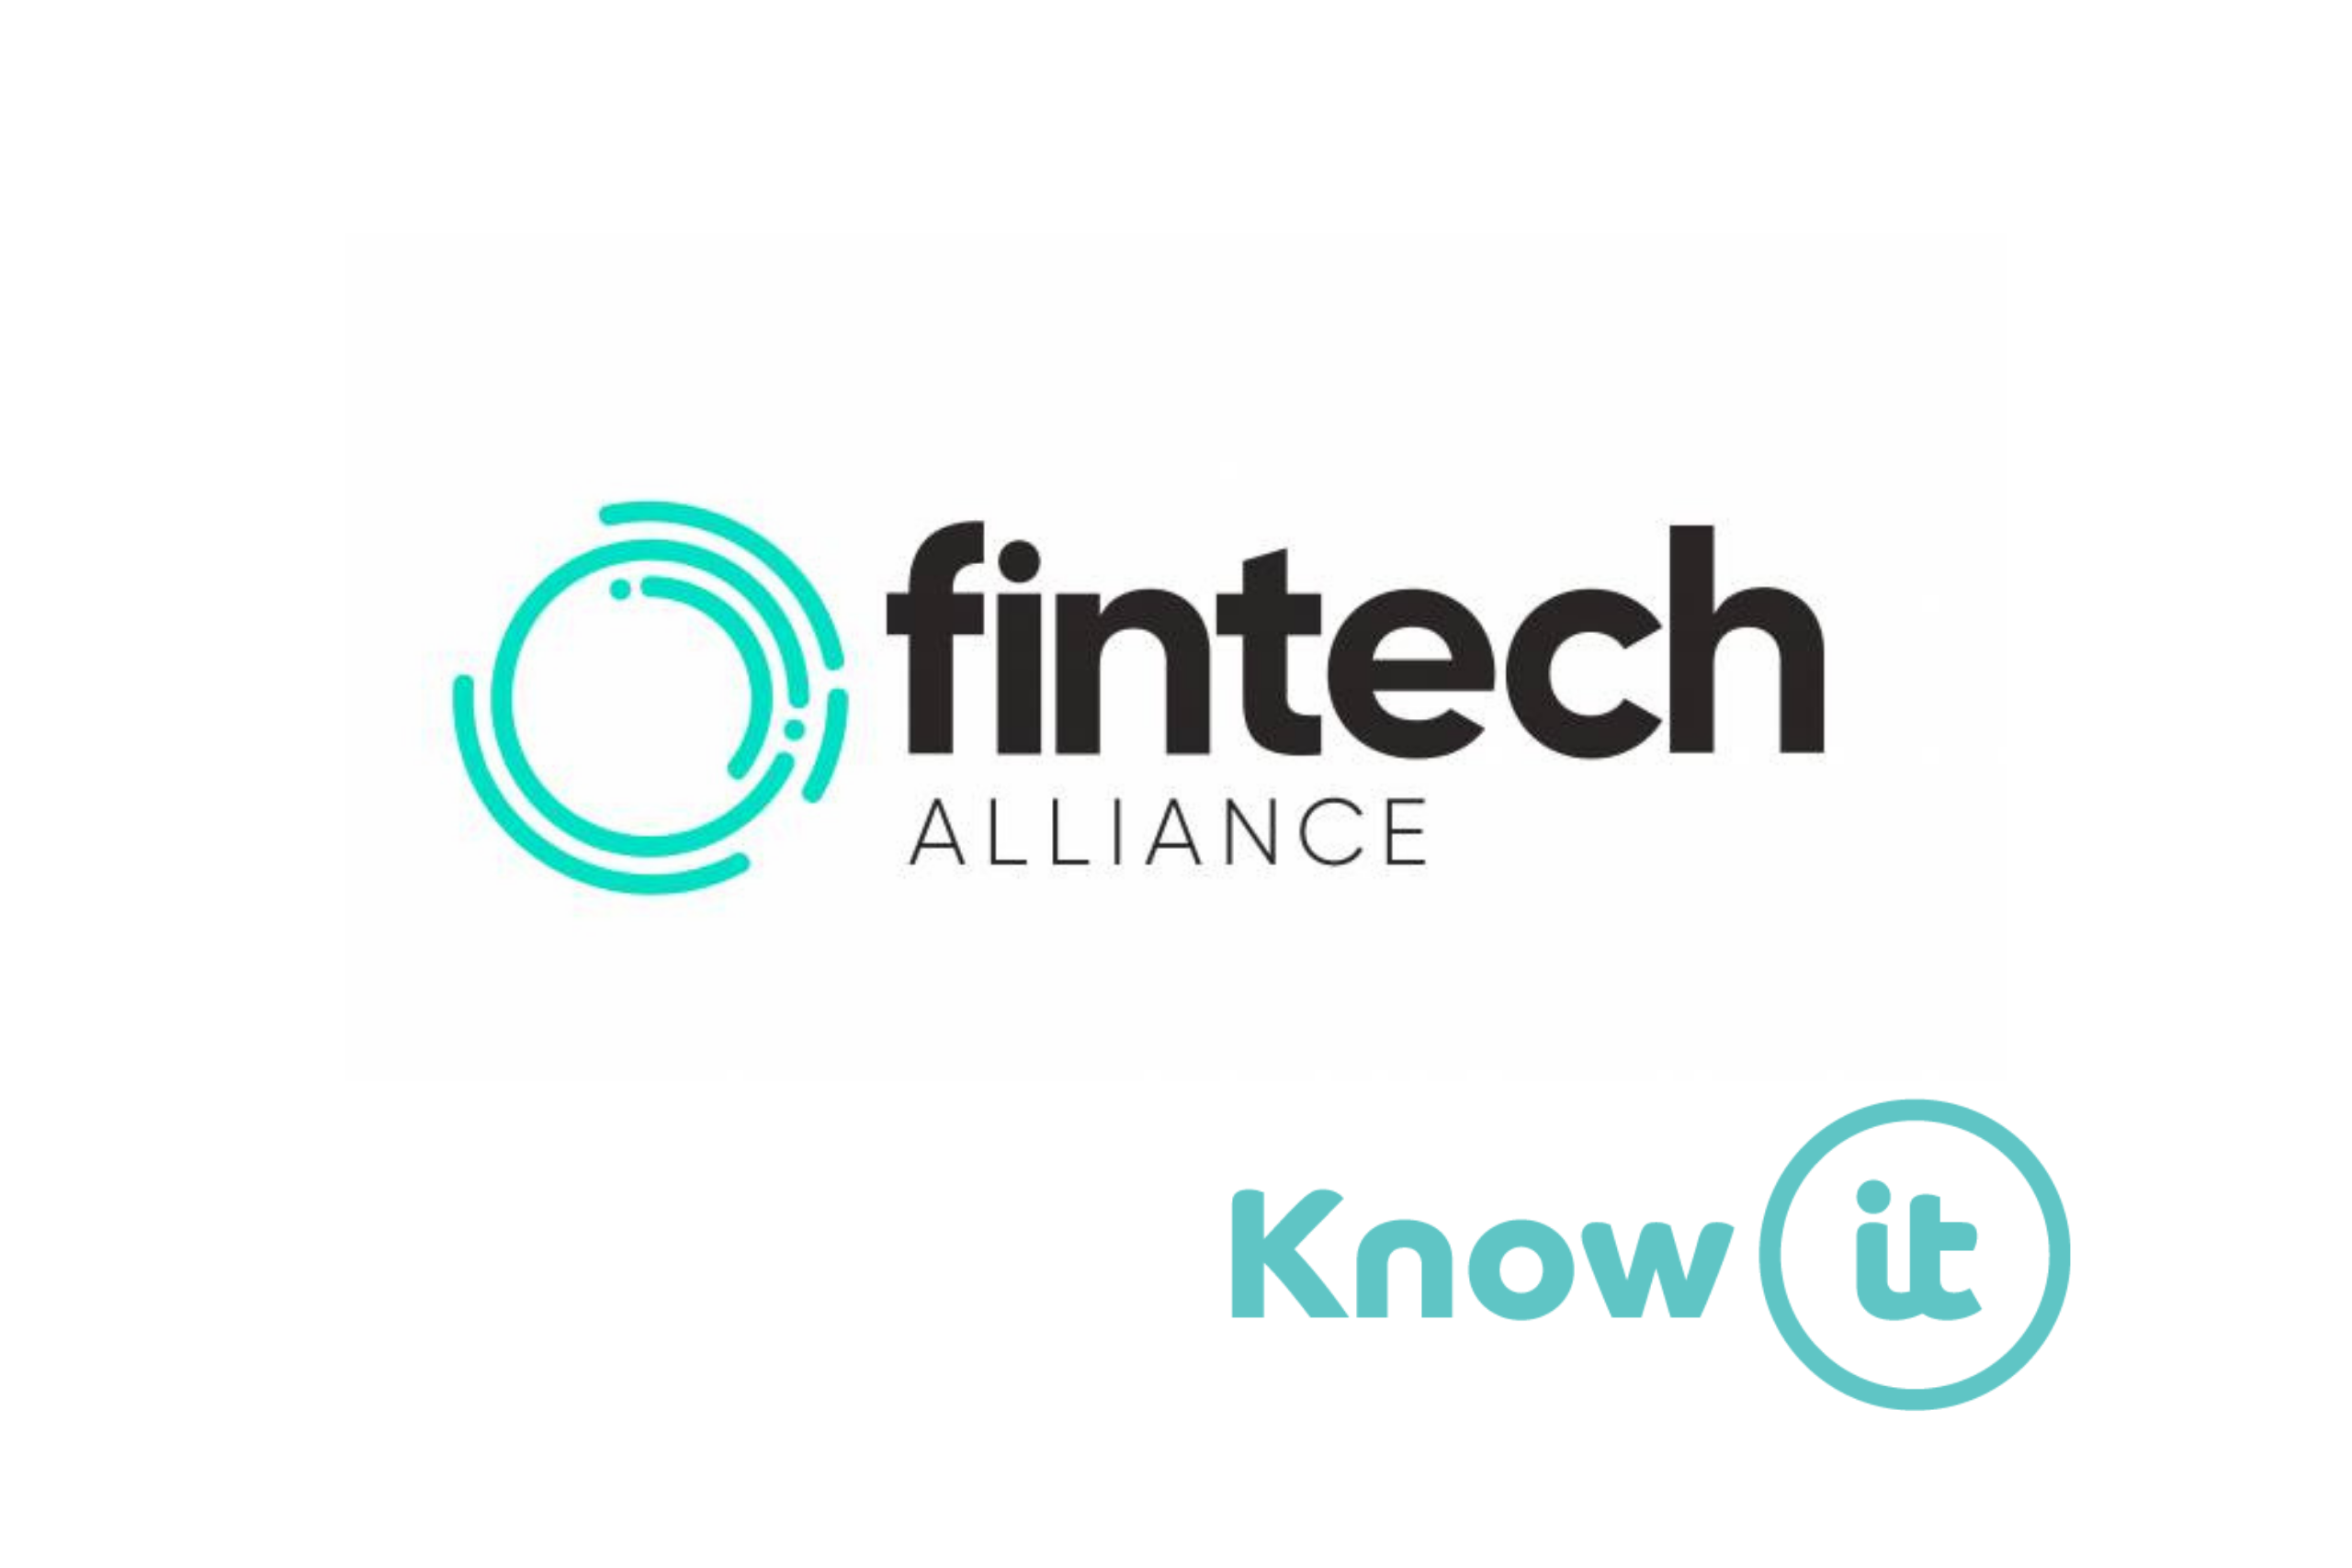 Graphic for recent news article from Fintech Alliance about Know-it